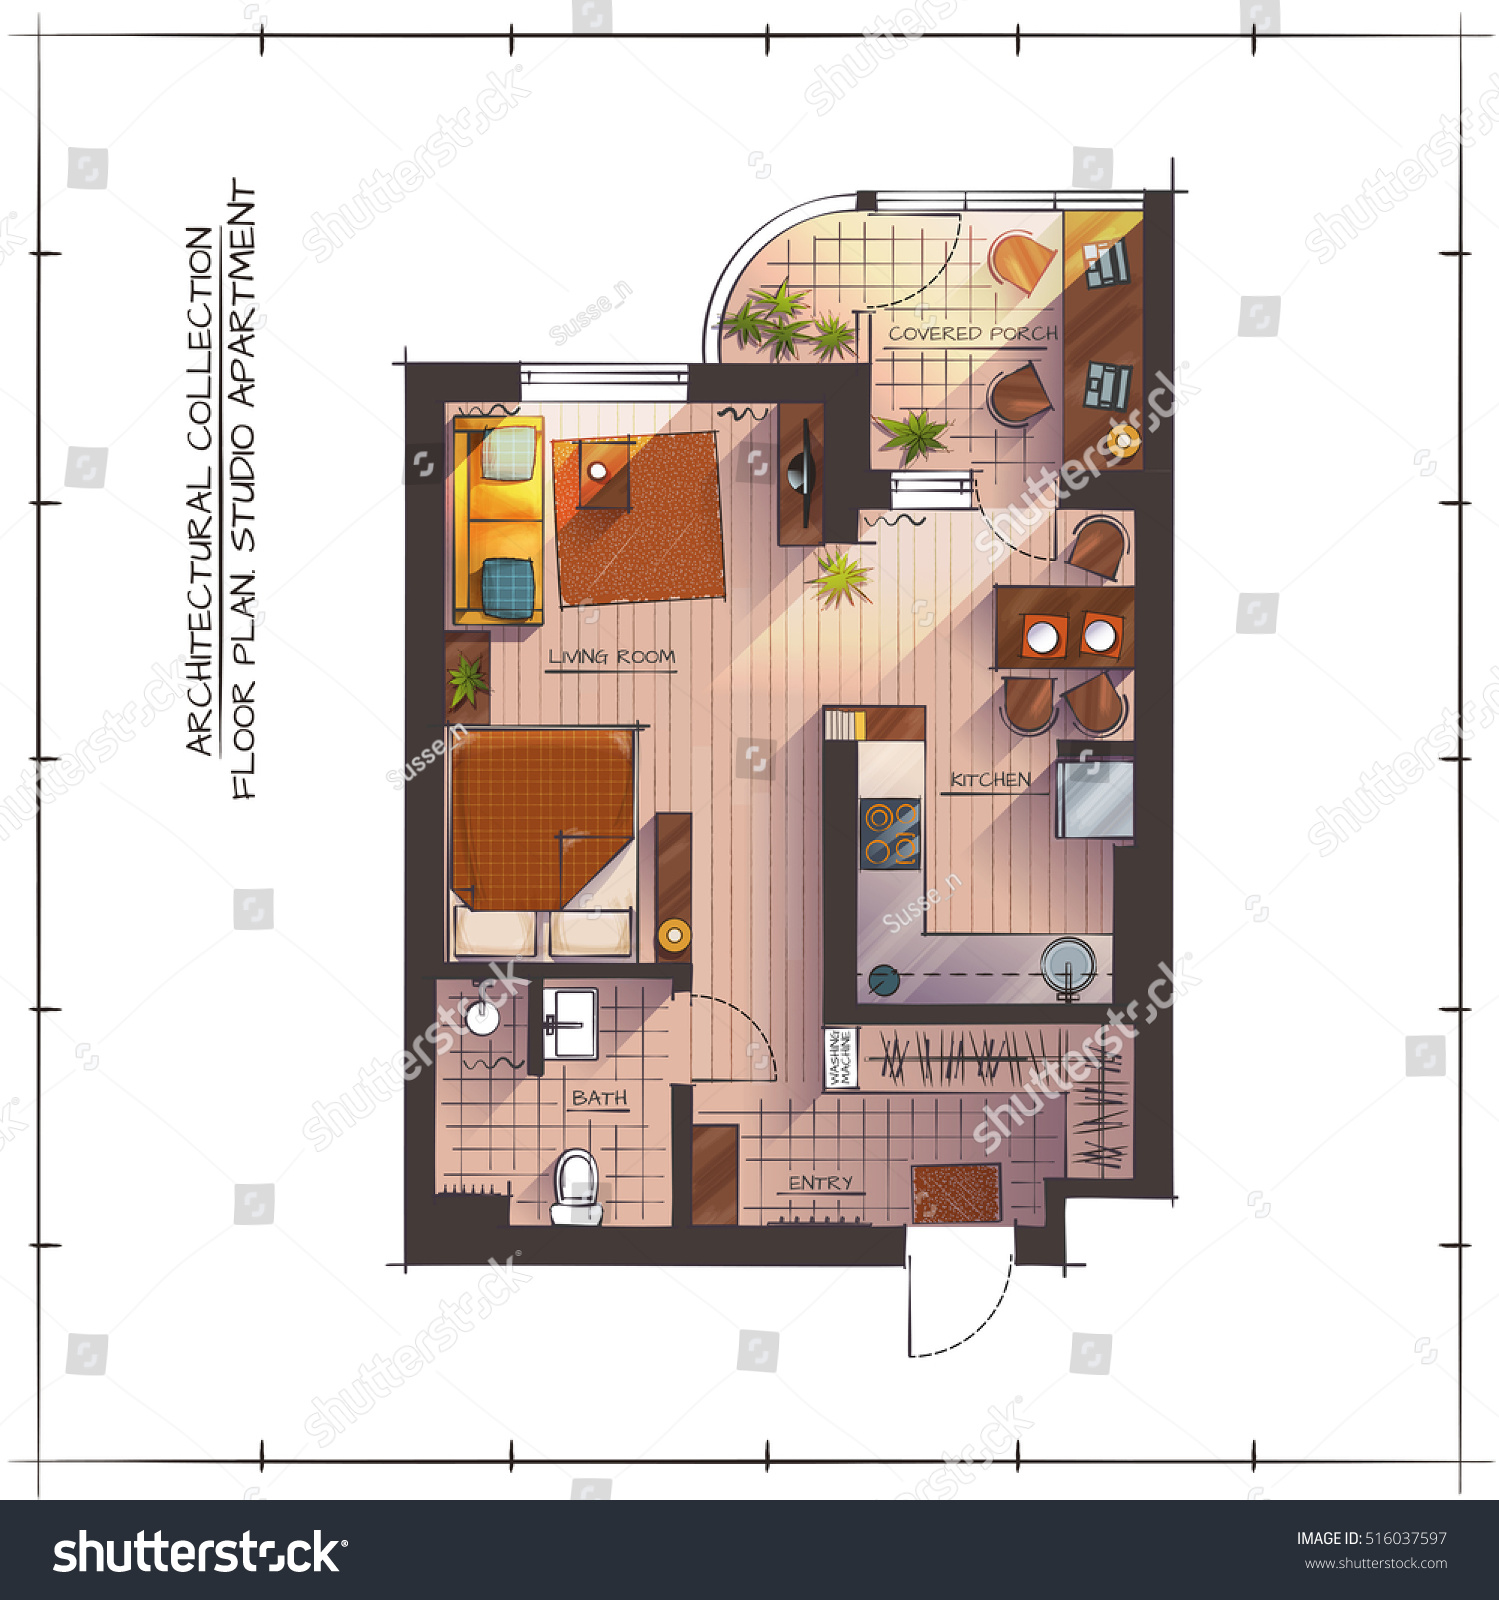 Architectural color floor plan studio apartment stock for Apartment stock plans